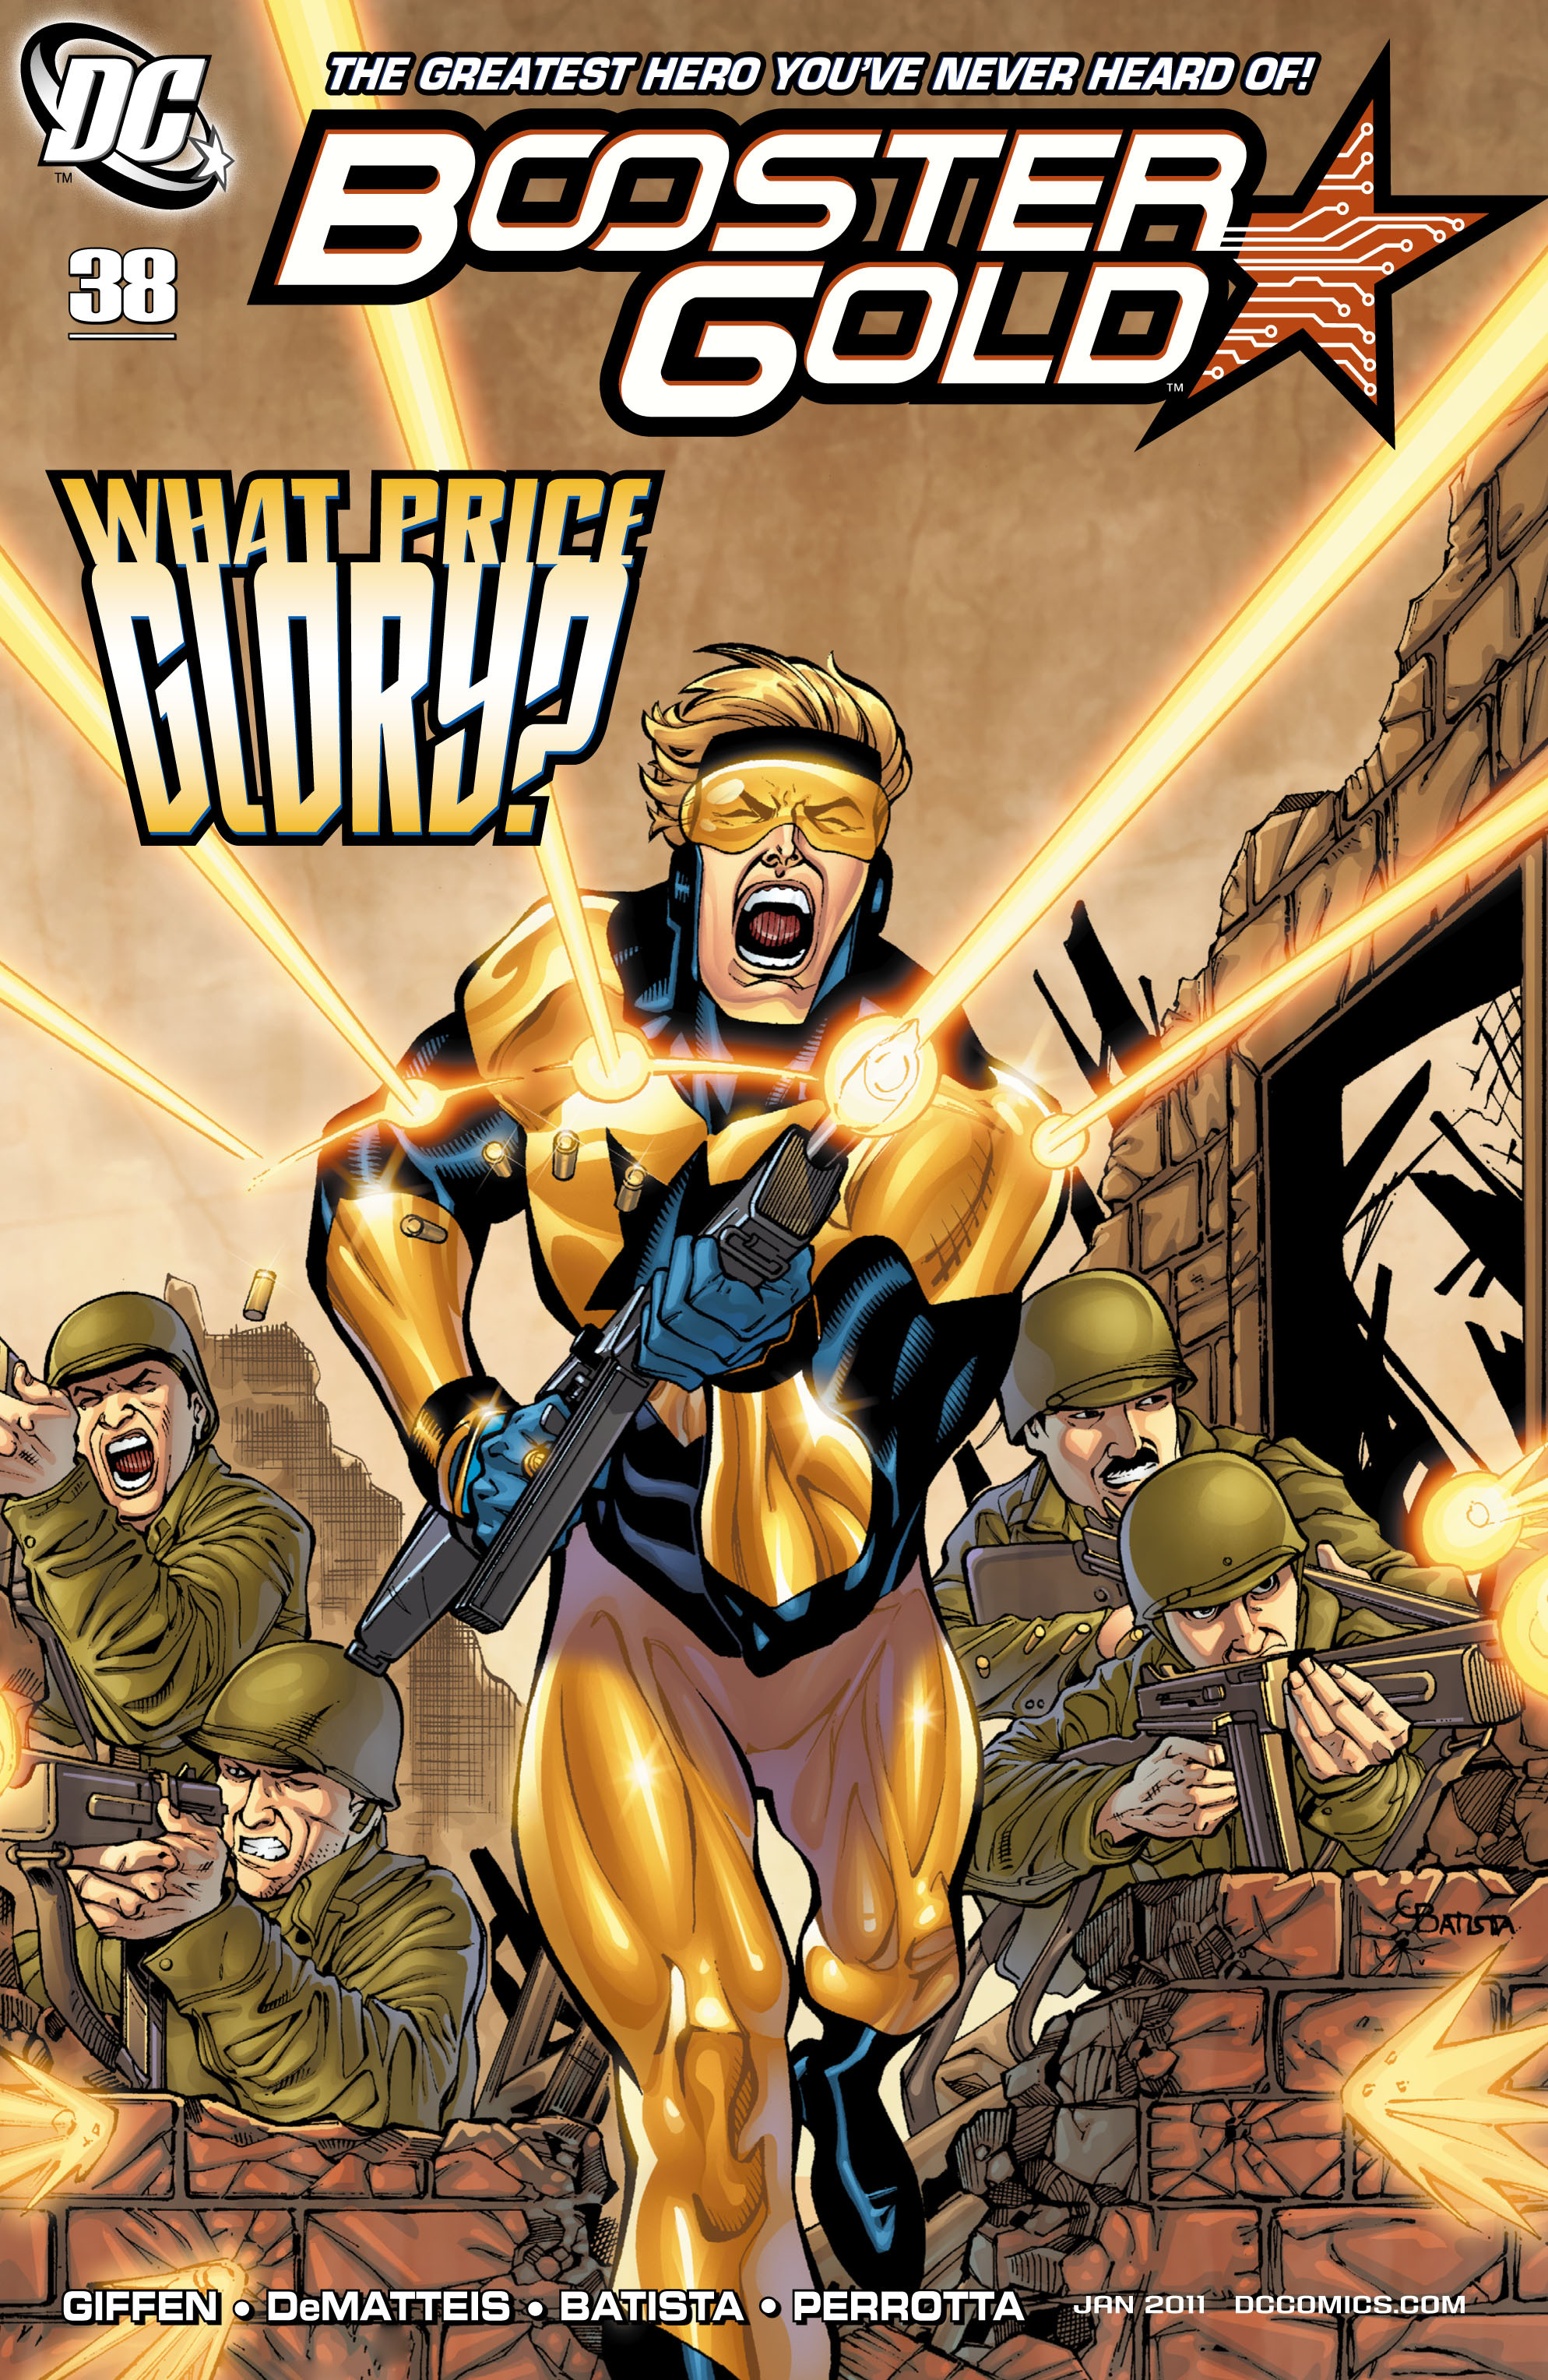 Booster Gold 2007 Issue 38